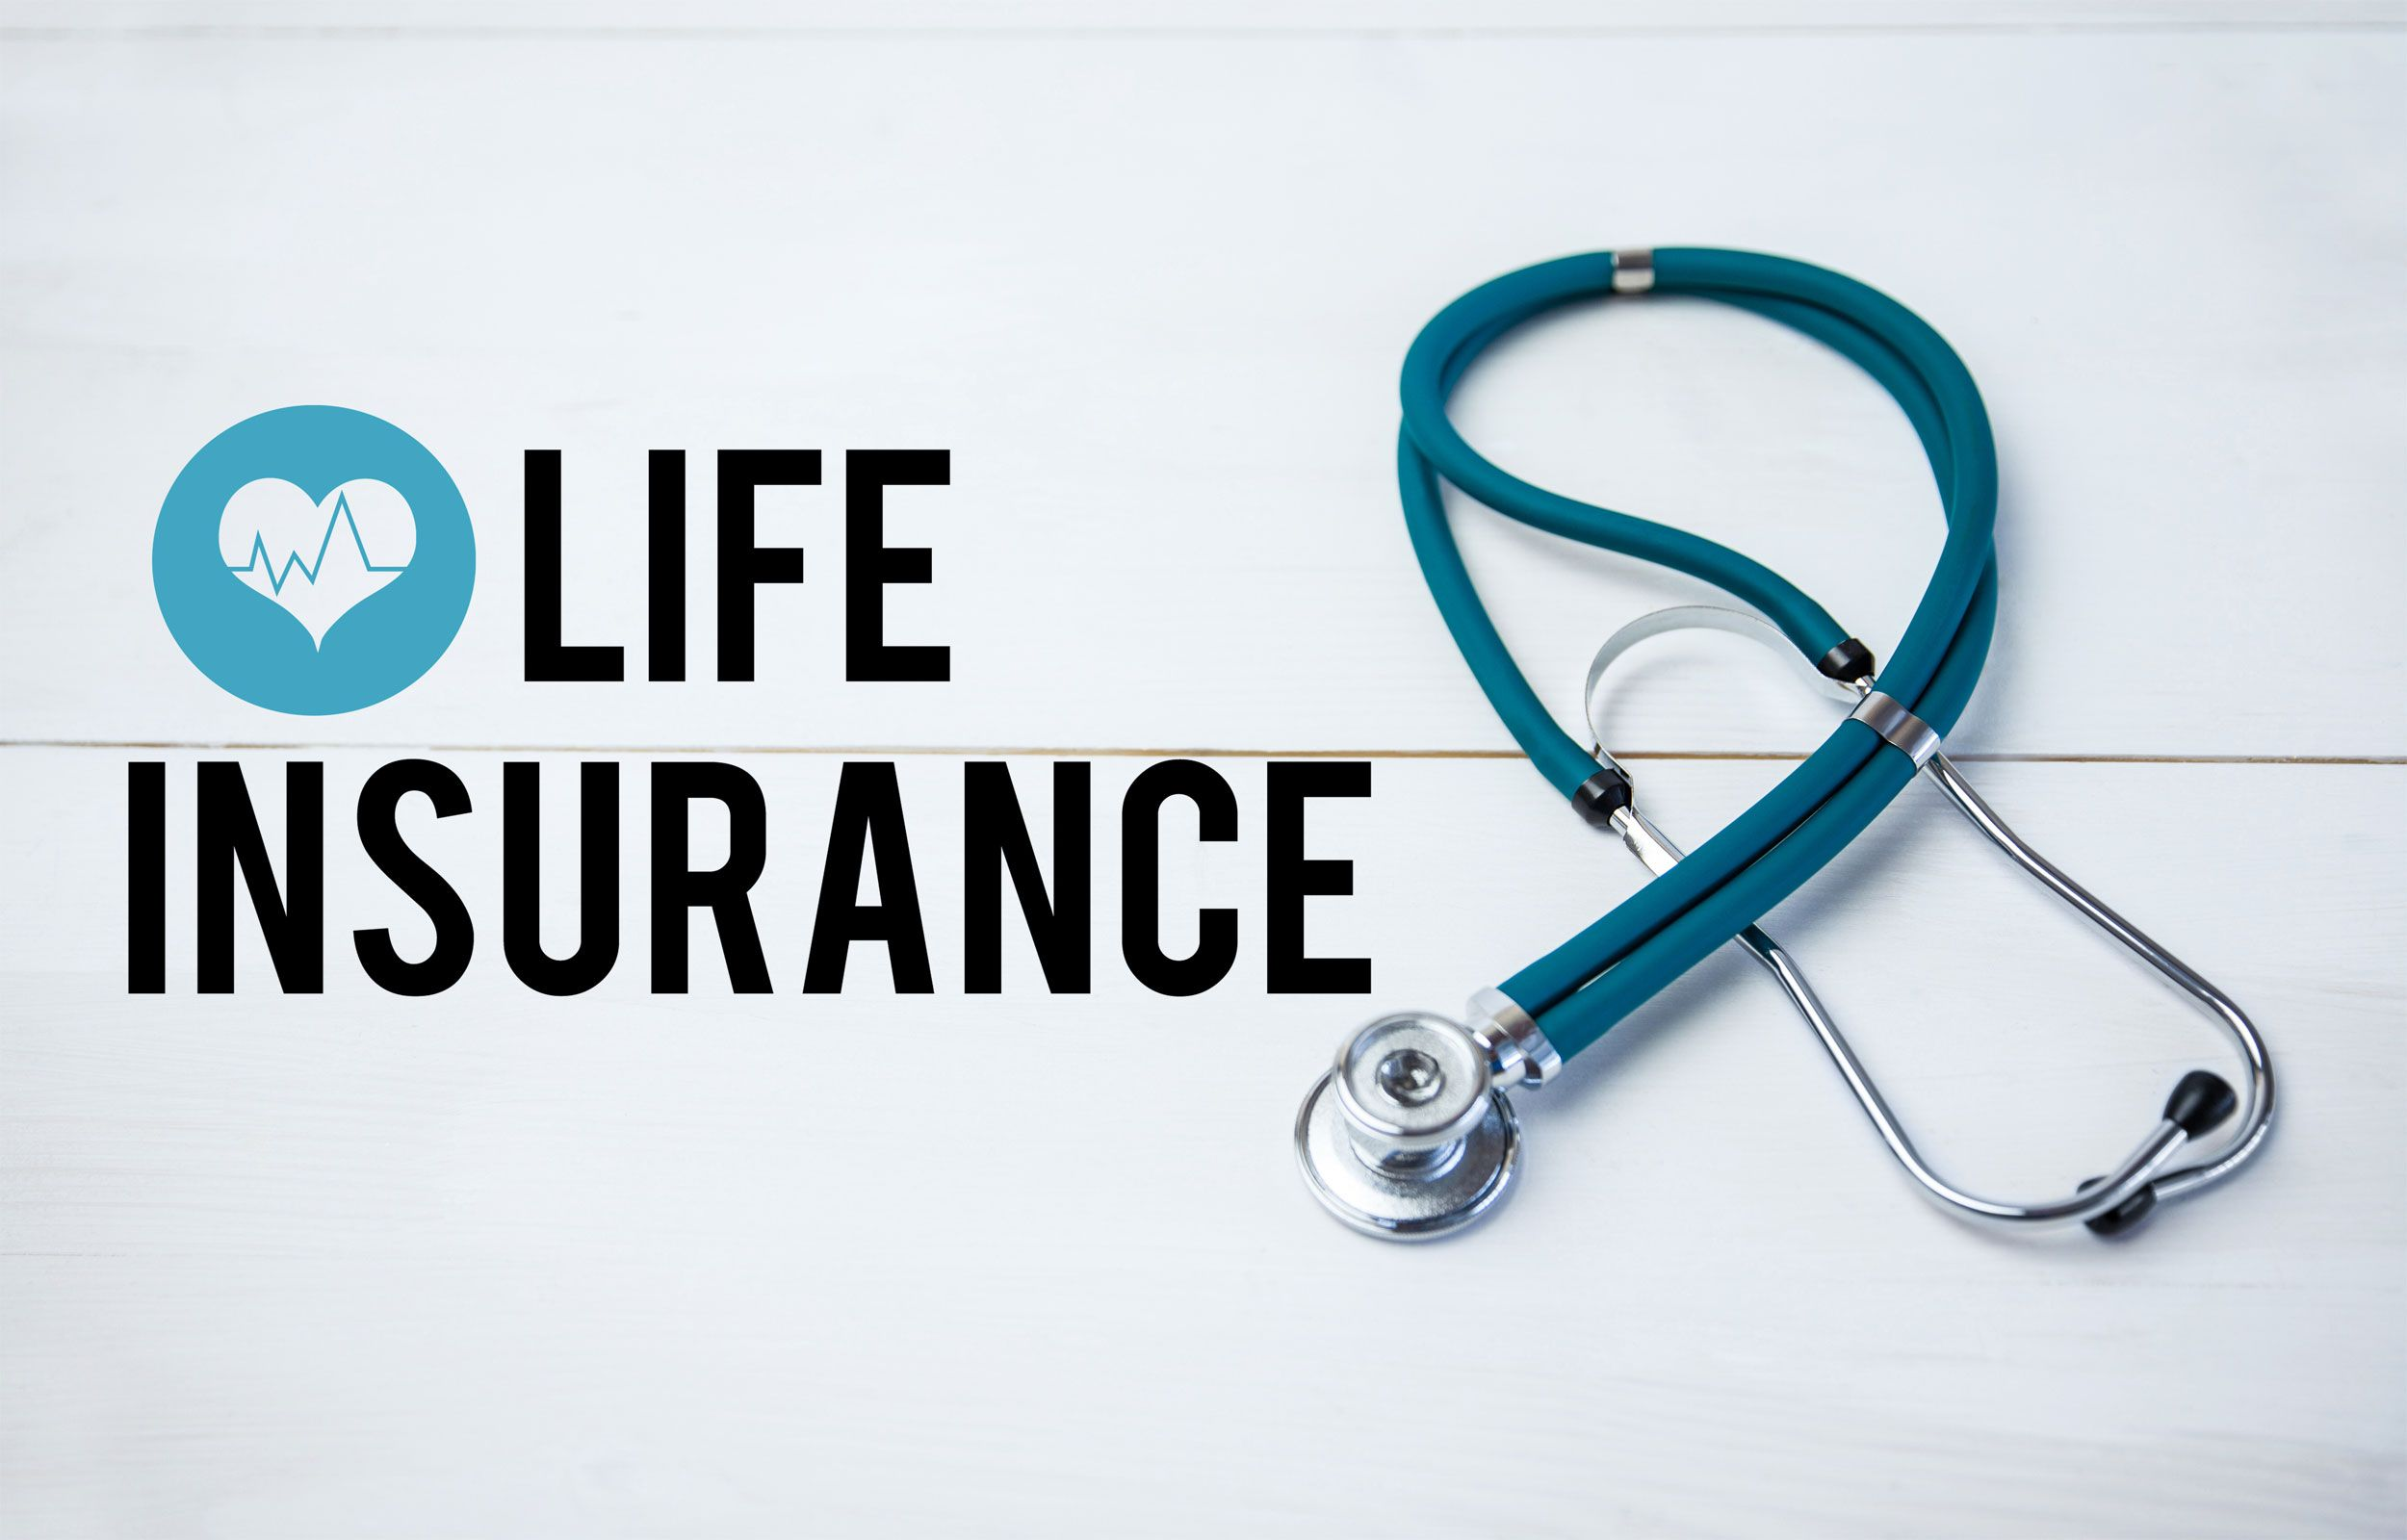 Life Insurance Quotes Online You Can Get Online Life Insurance Quotes Online Life Insurance .